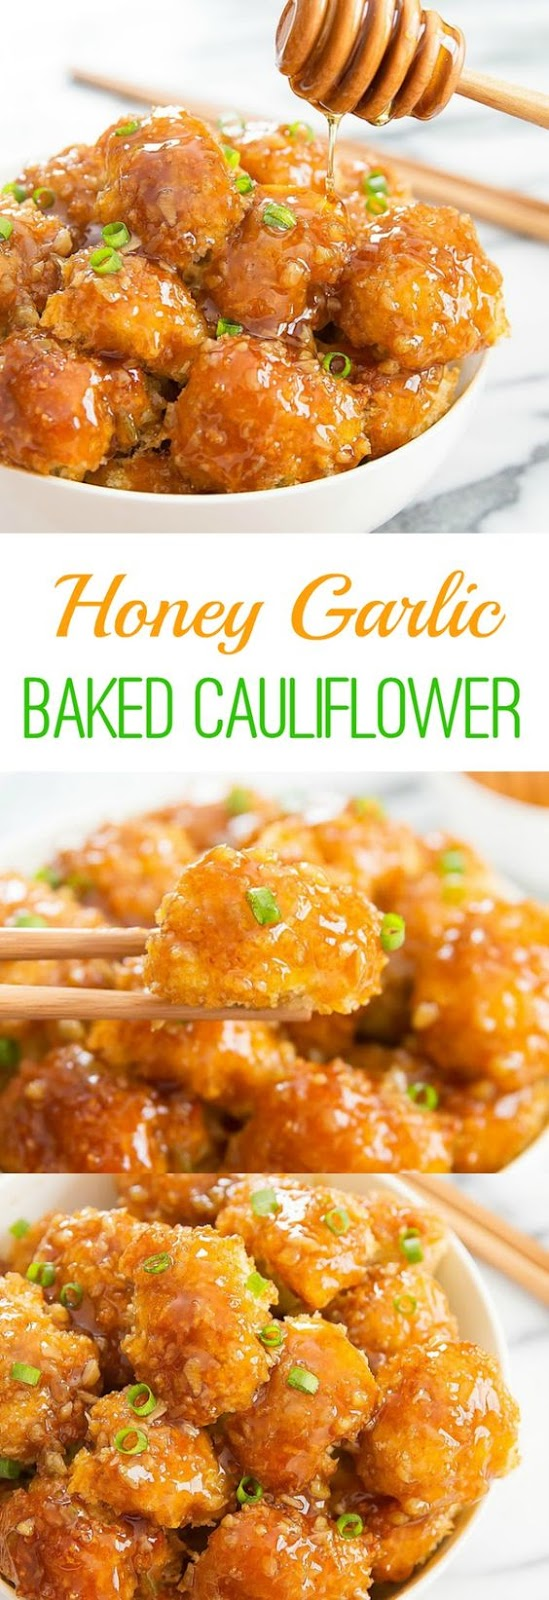 HONEY GARLIC BAKED CAULIFLOWER #garlic #vegan #veganrecipes #cauliflower #honey #honeygarlicbaked